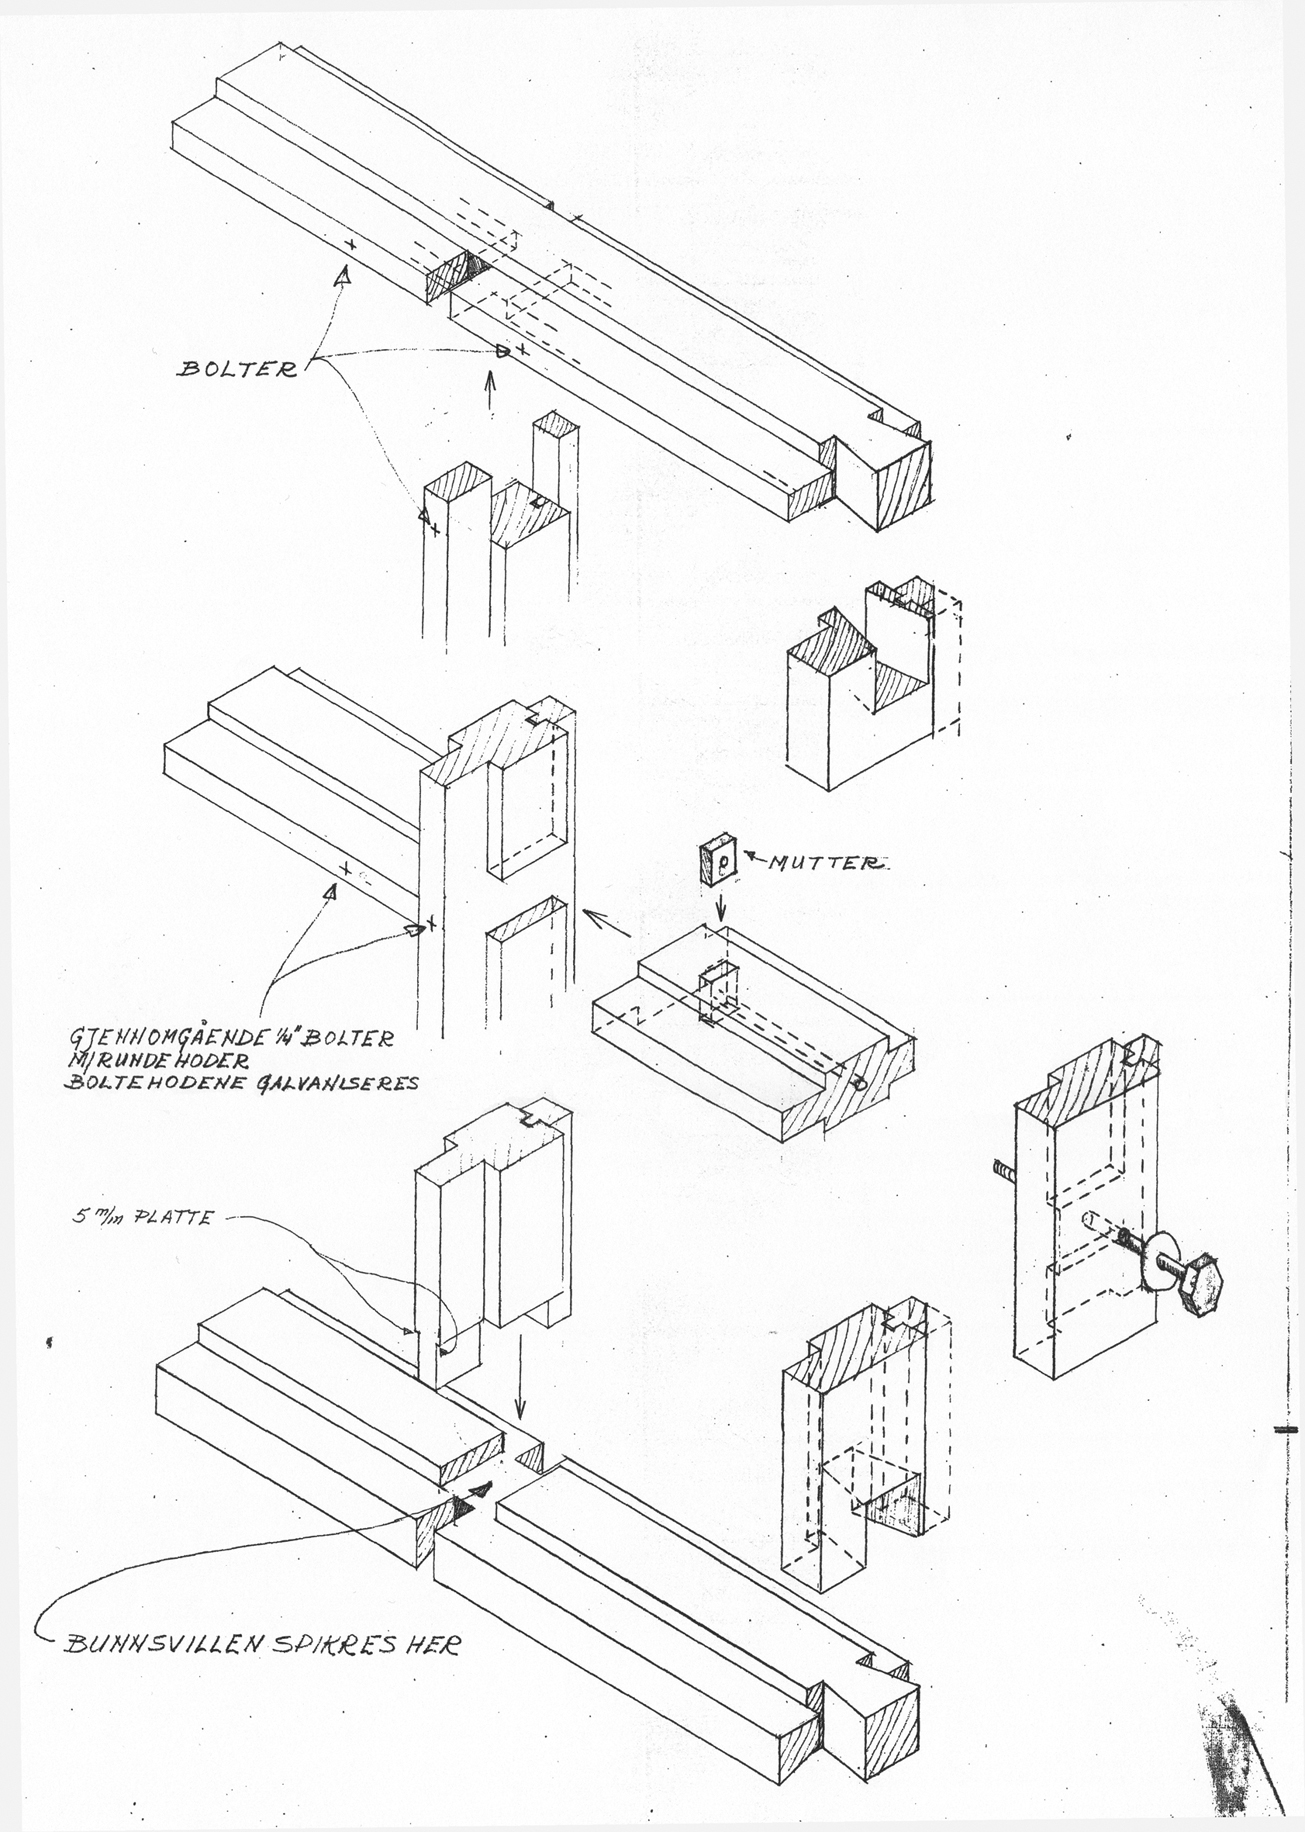 Detail of the construction documents for Norberg-Schulz and Korsmo's Planetveien houses specifying to the carpenters how the intricate joinery of the wooden structure was to be hewn and assembled.